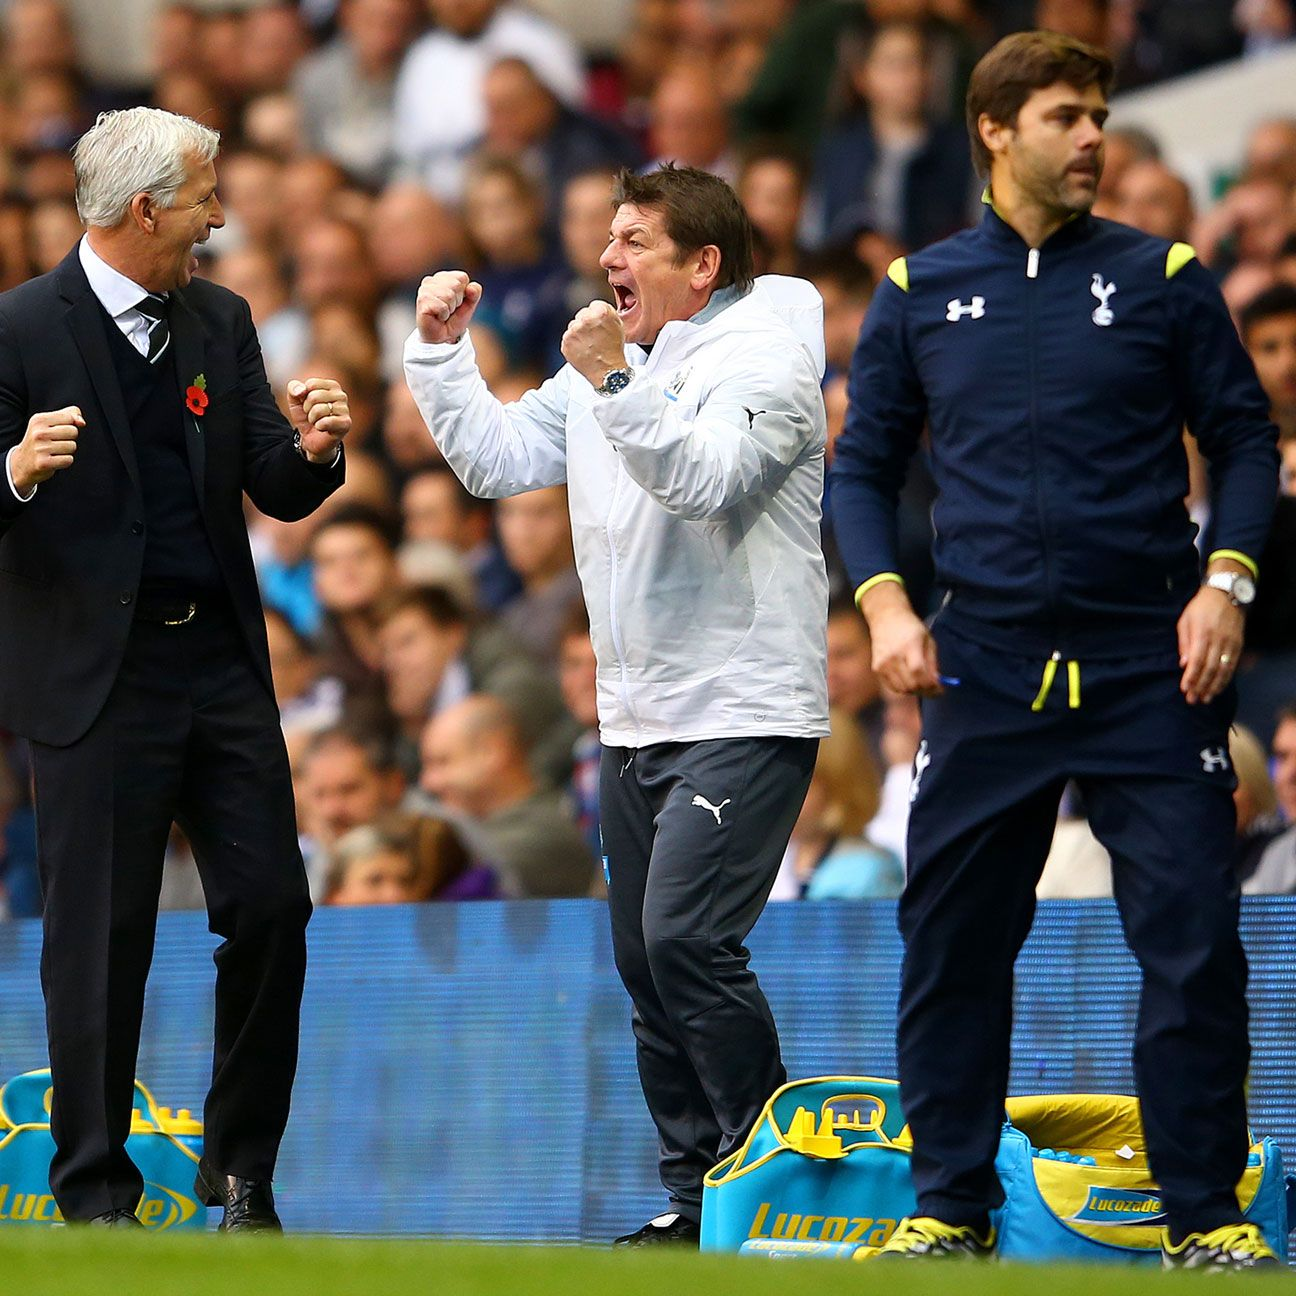 Alan Pardew's attack-minded second half subs paid dividends against Mauricio Pochettino's side.